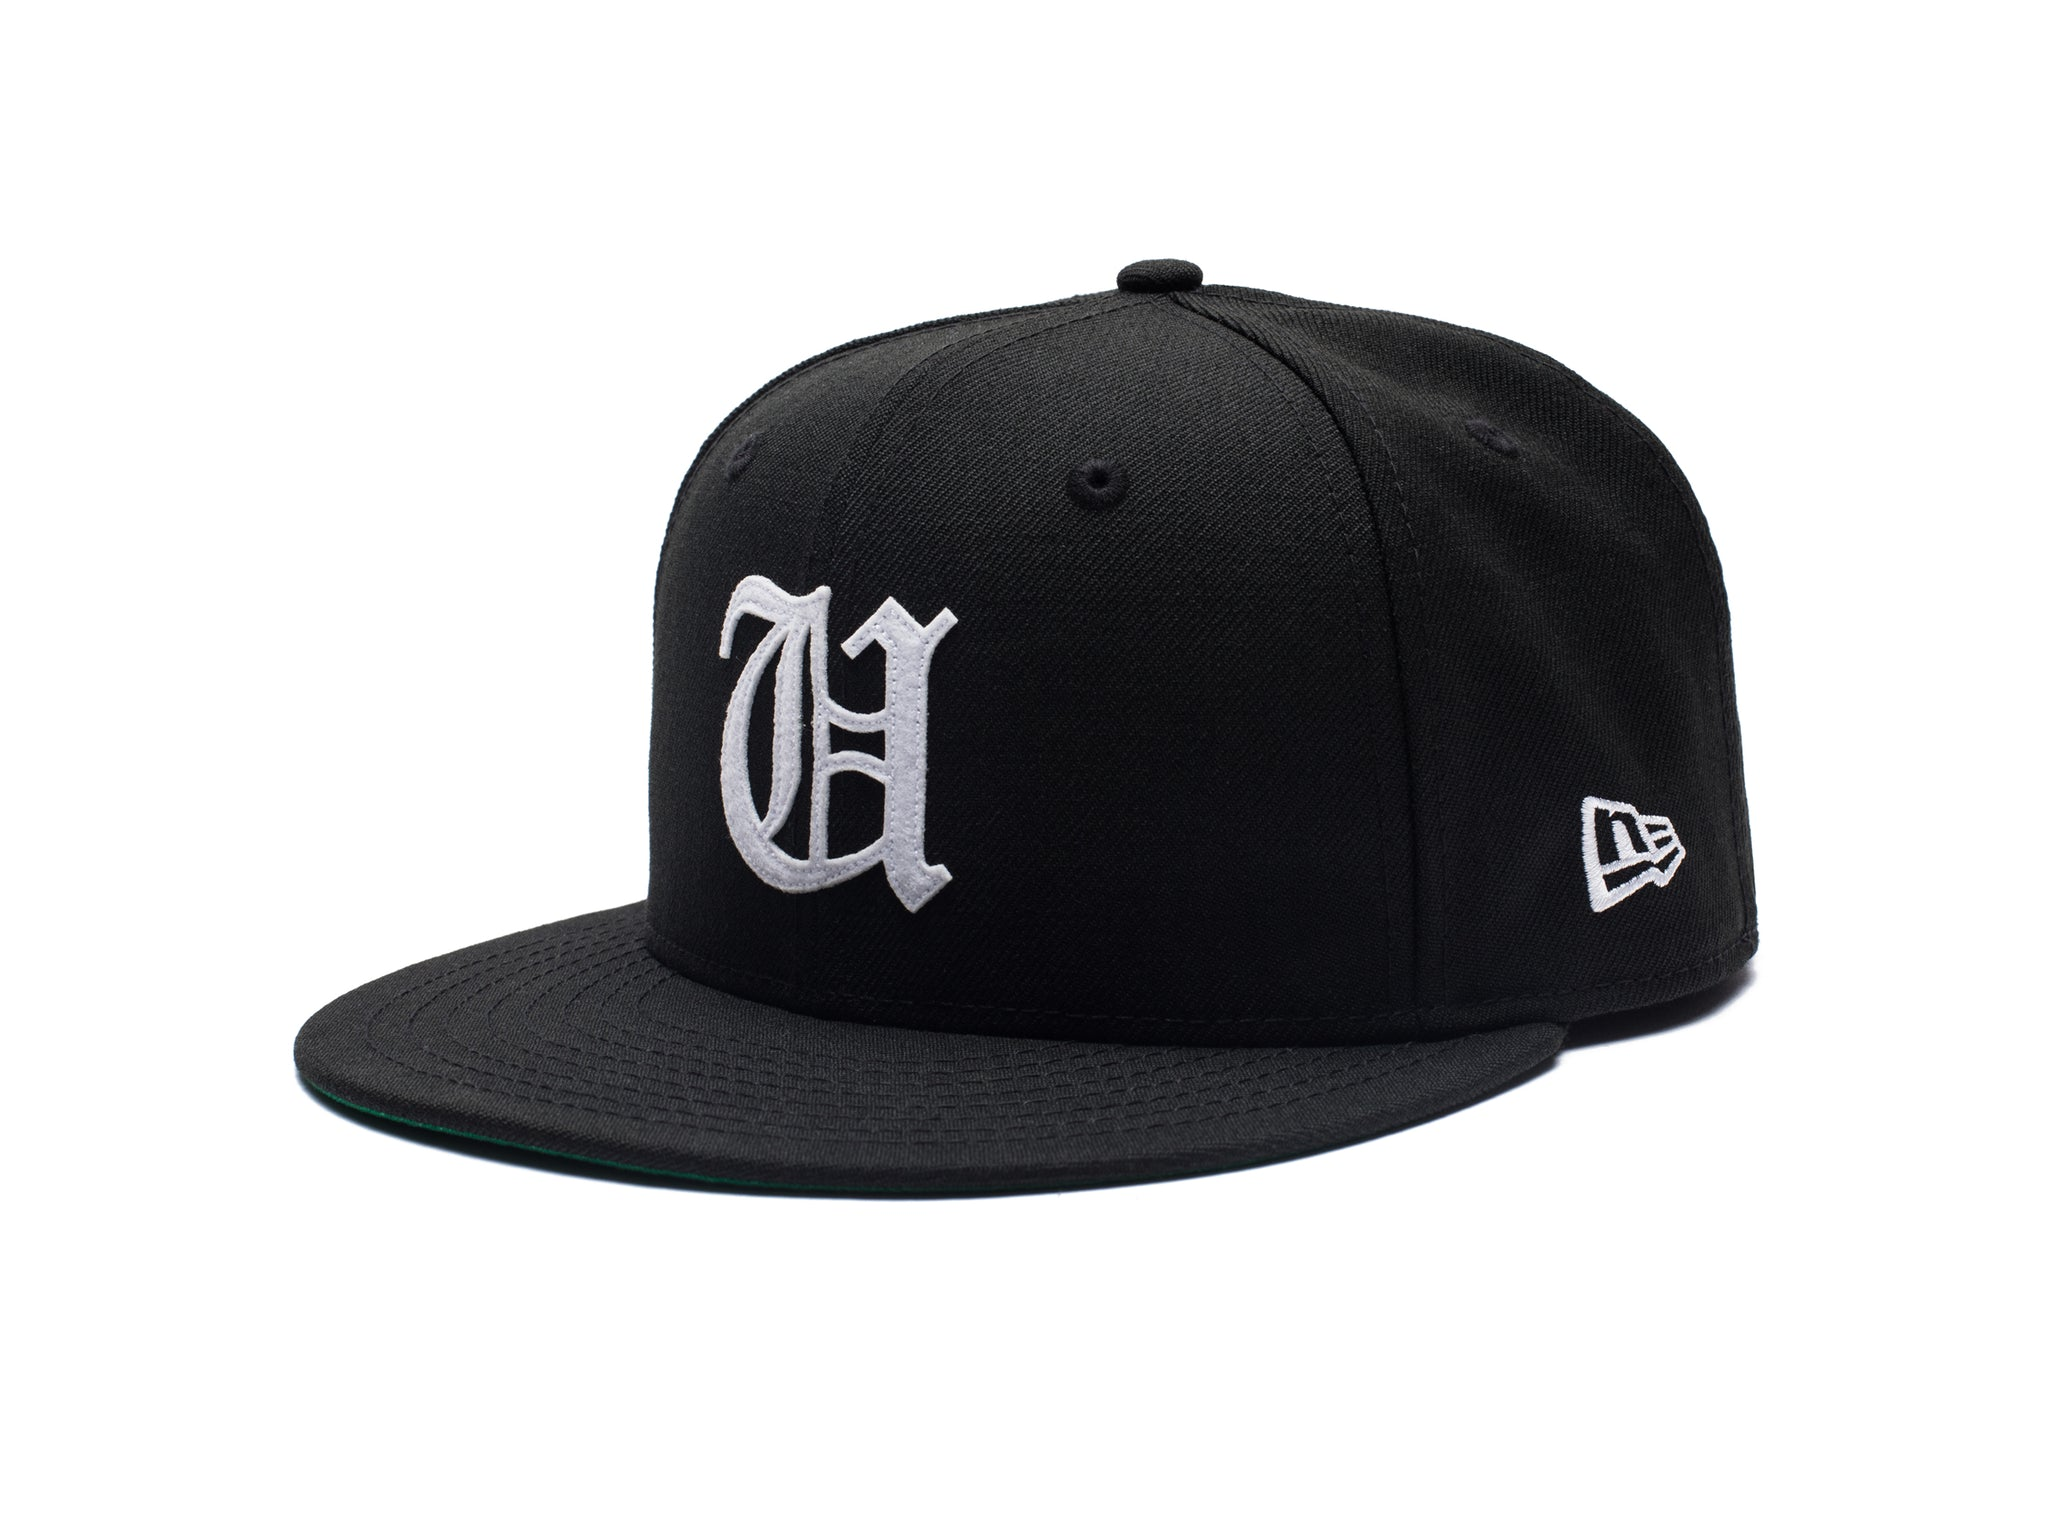 UNDEFEATED X NEW ERA O.E. FITTED